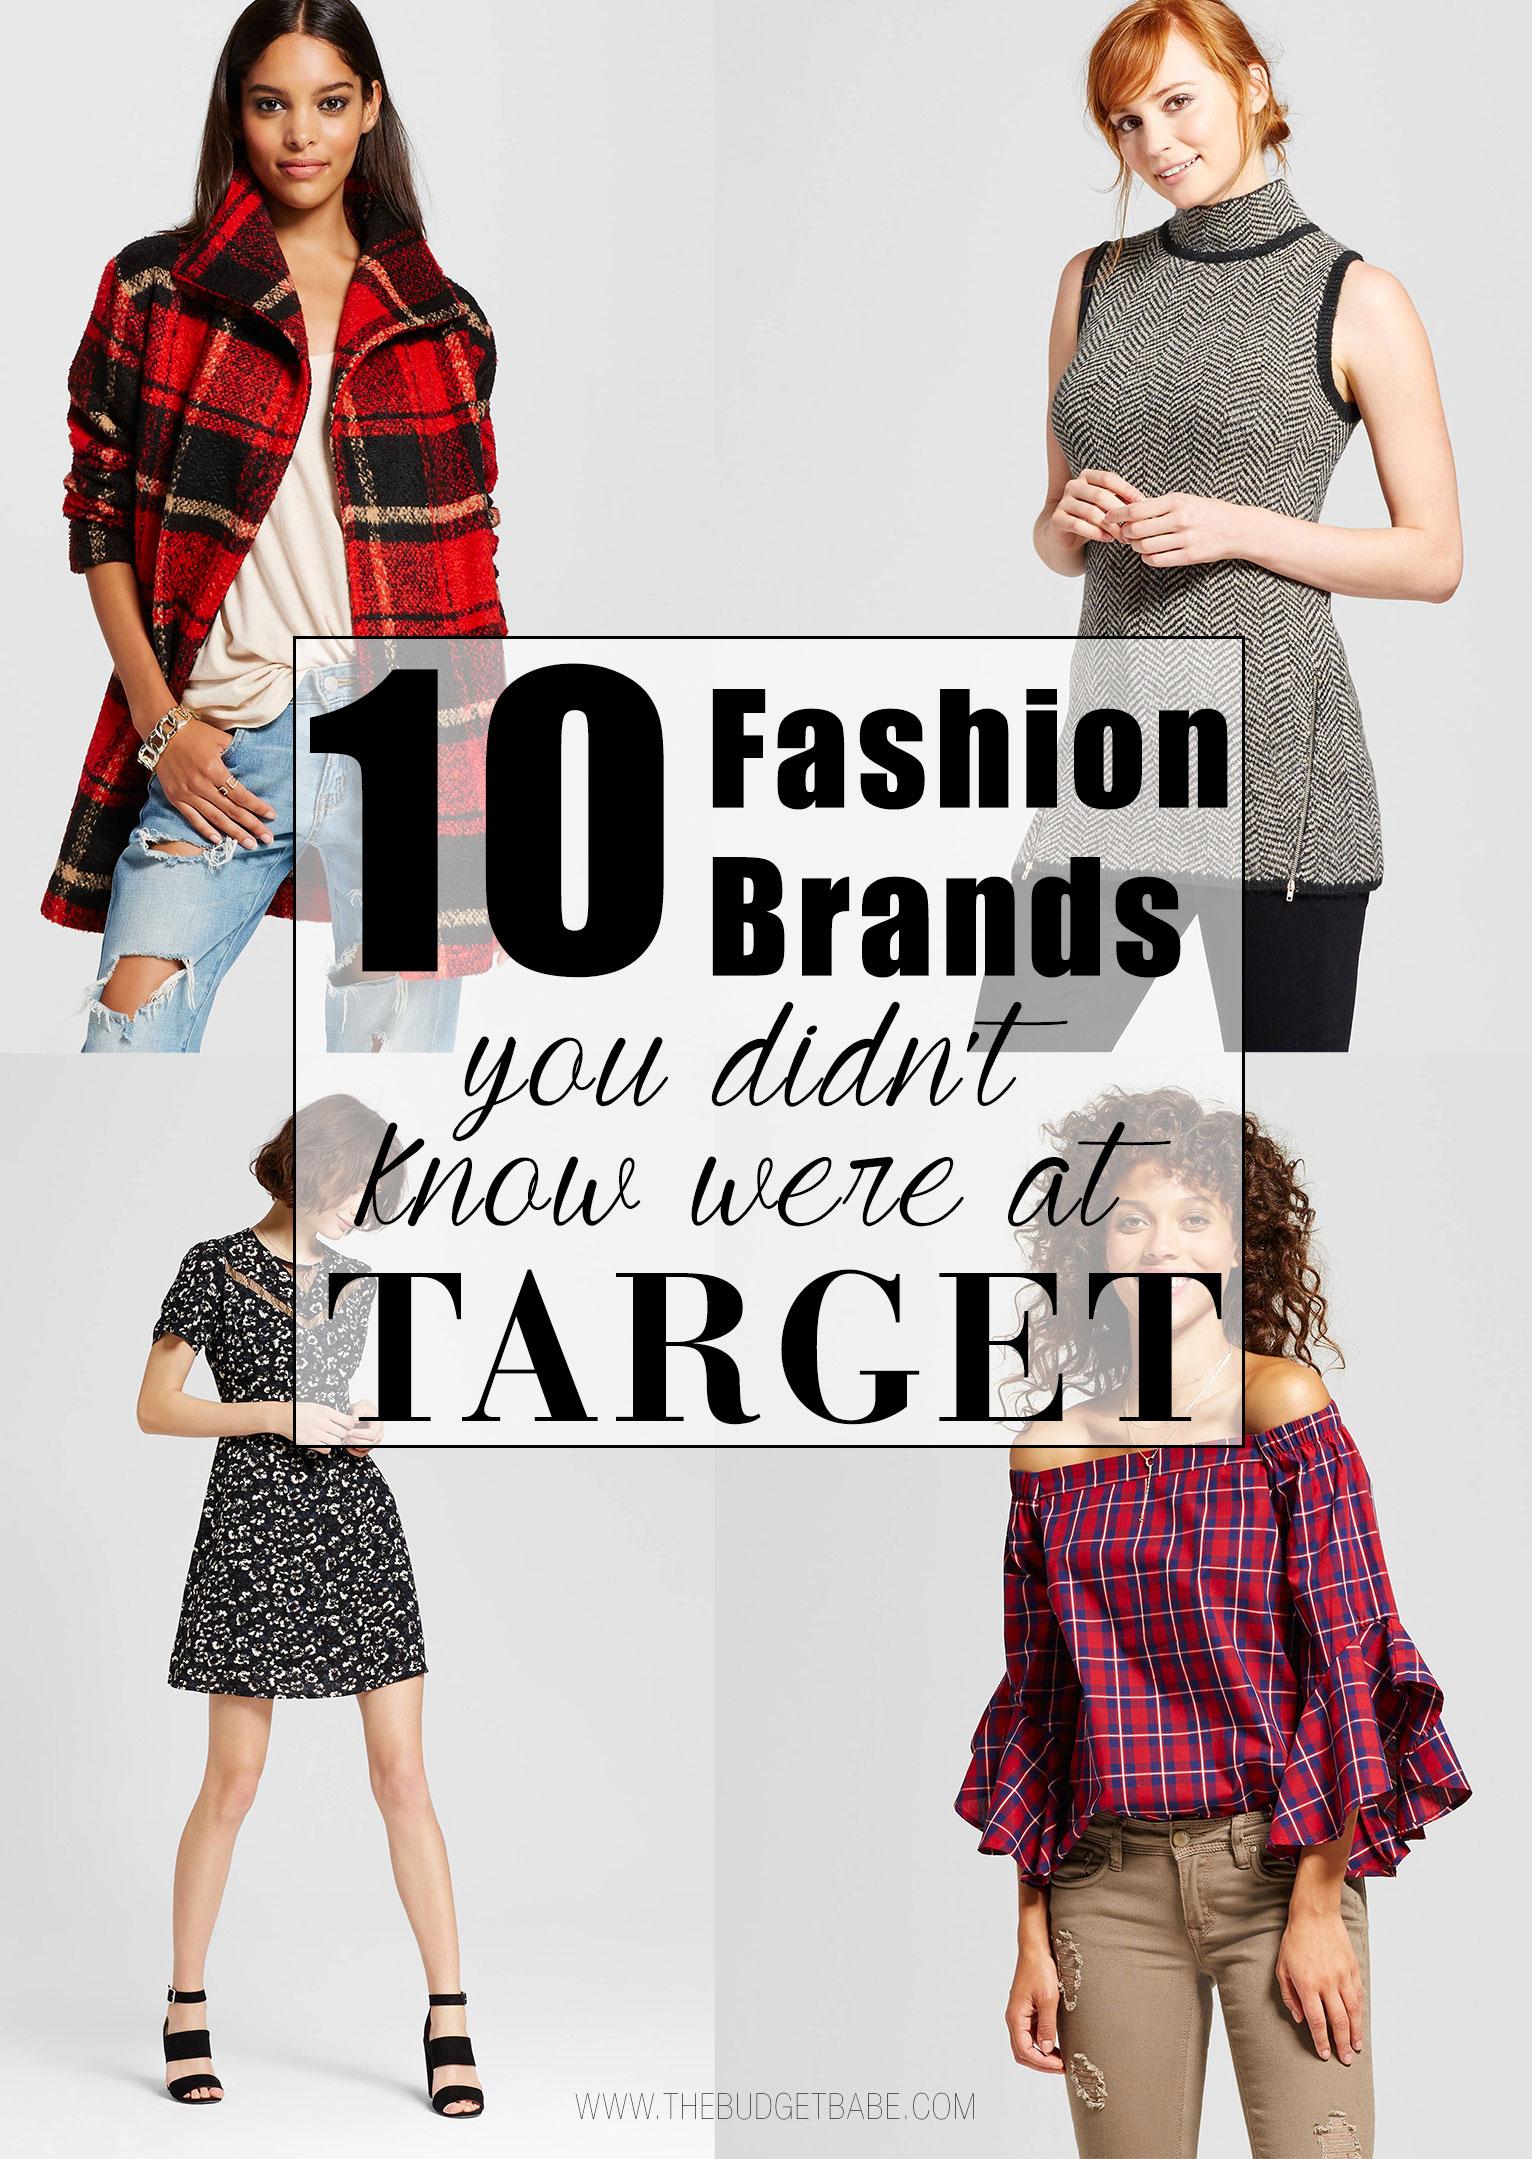 Here are 10 fashion brands you might not know at Target.